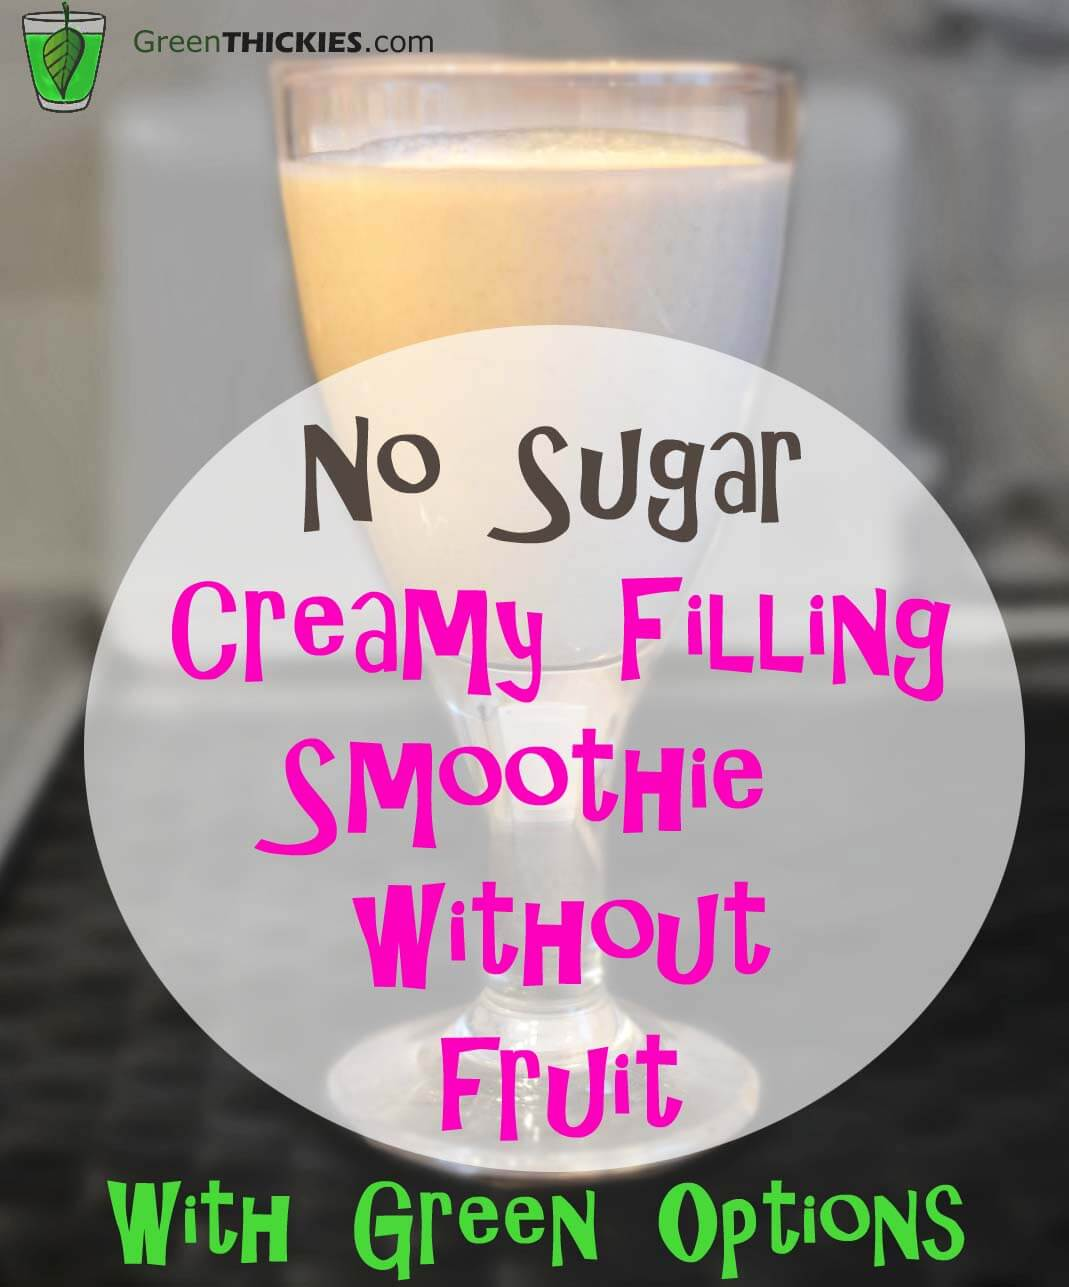 No sugar creamy filling smoothie with no fruit